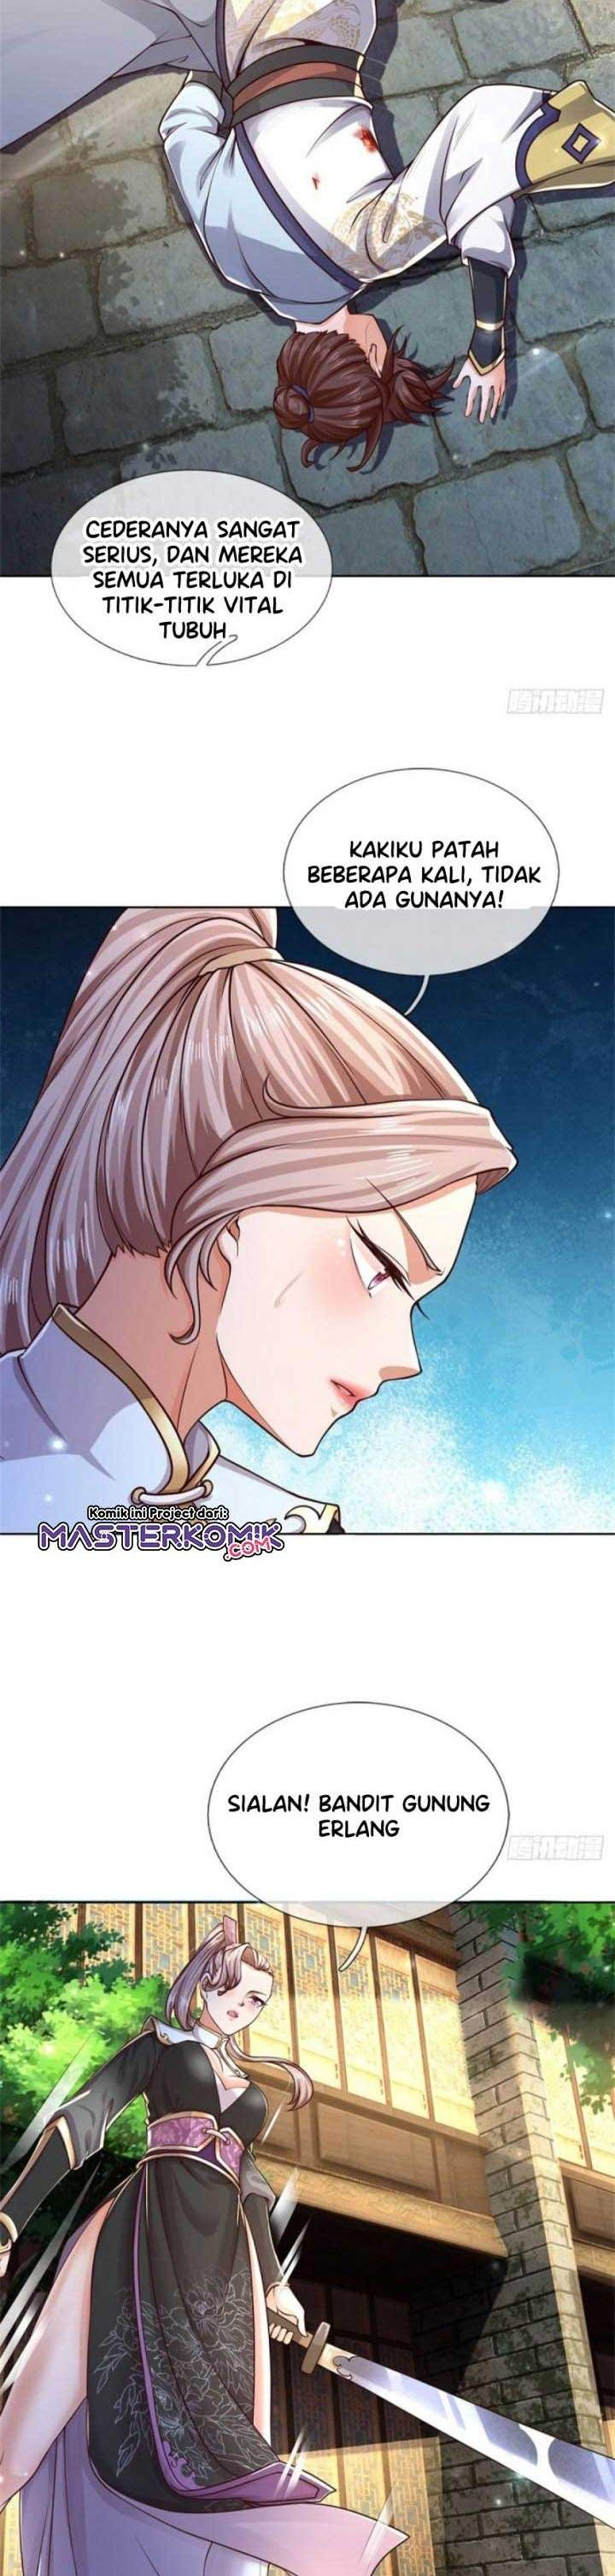 The Way of Domination Chapter 31